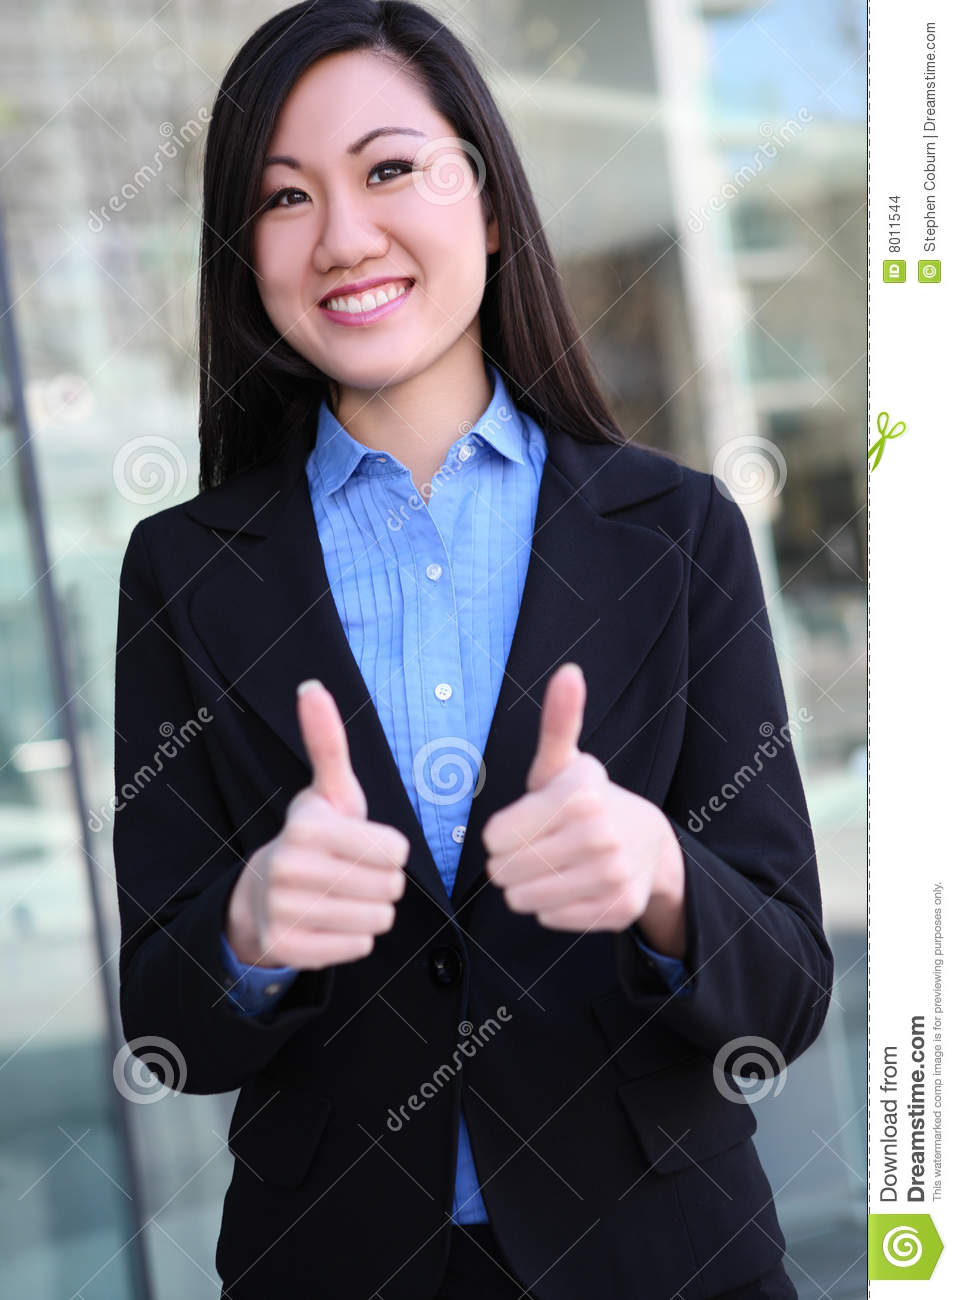 Asian Business Woman Success Stock Images - Image: 8011544